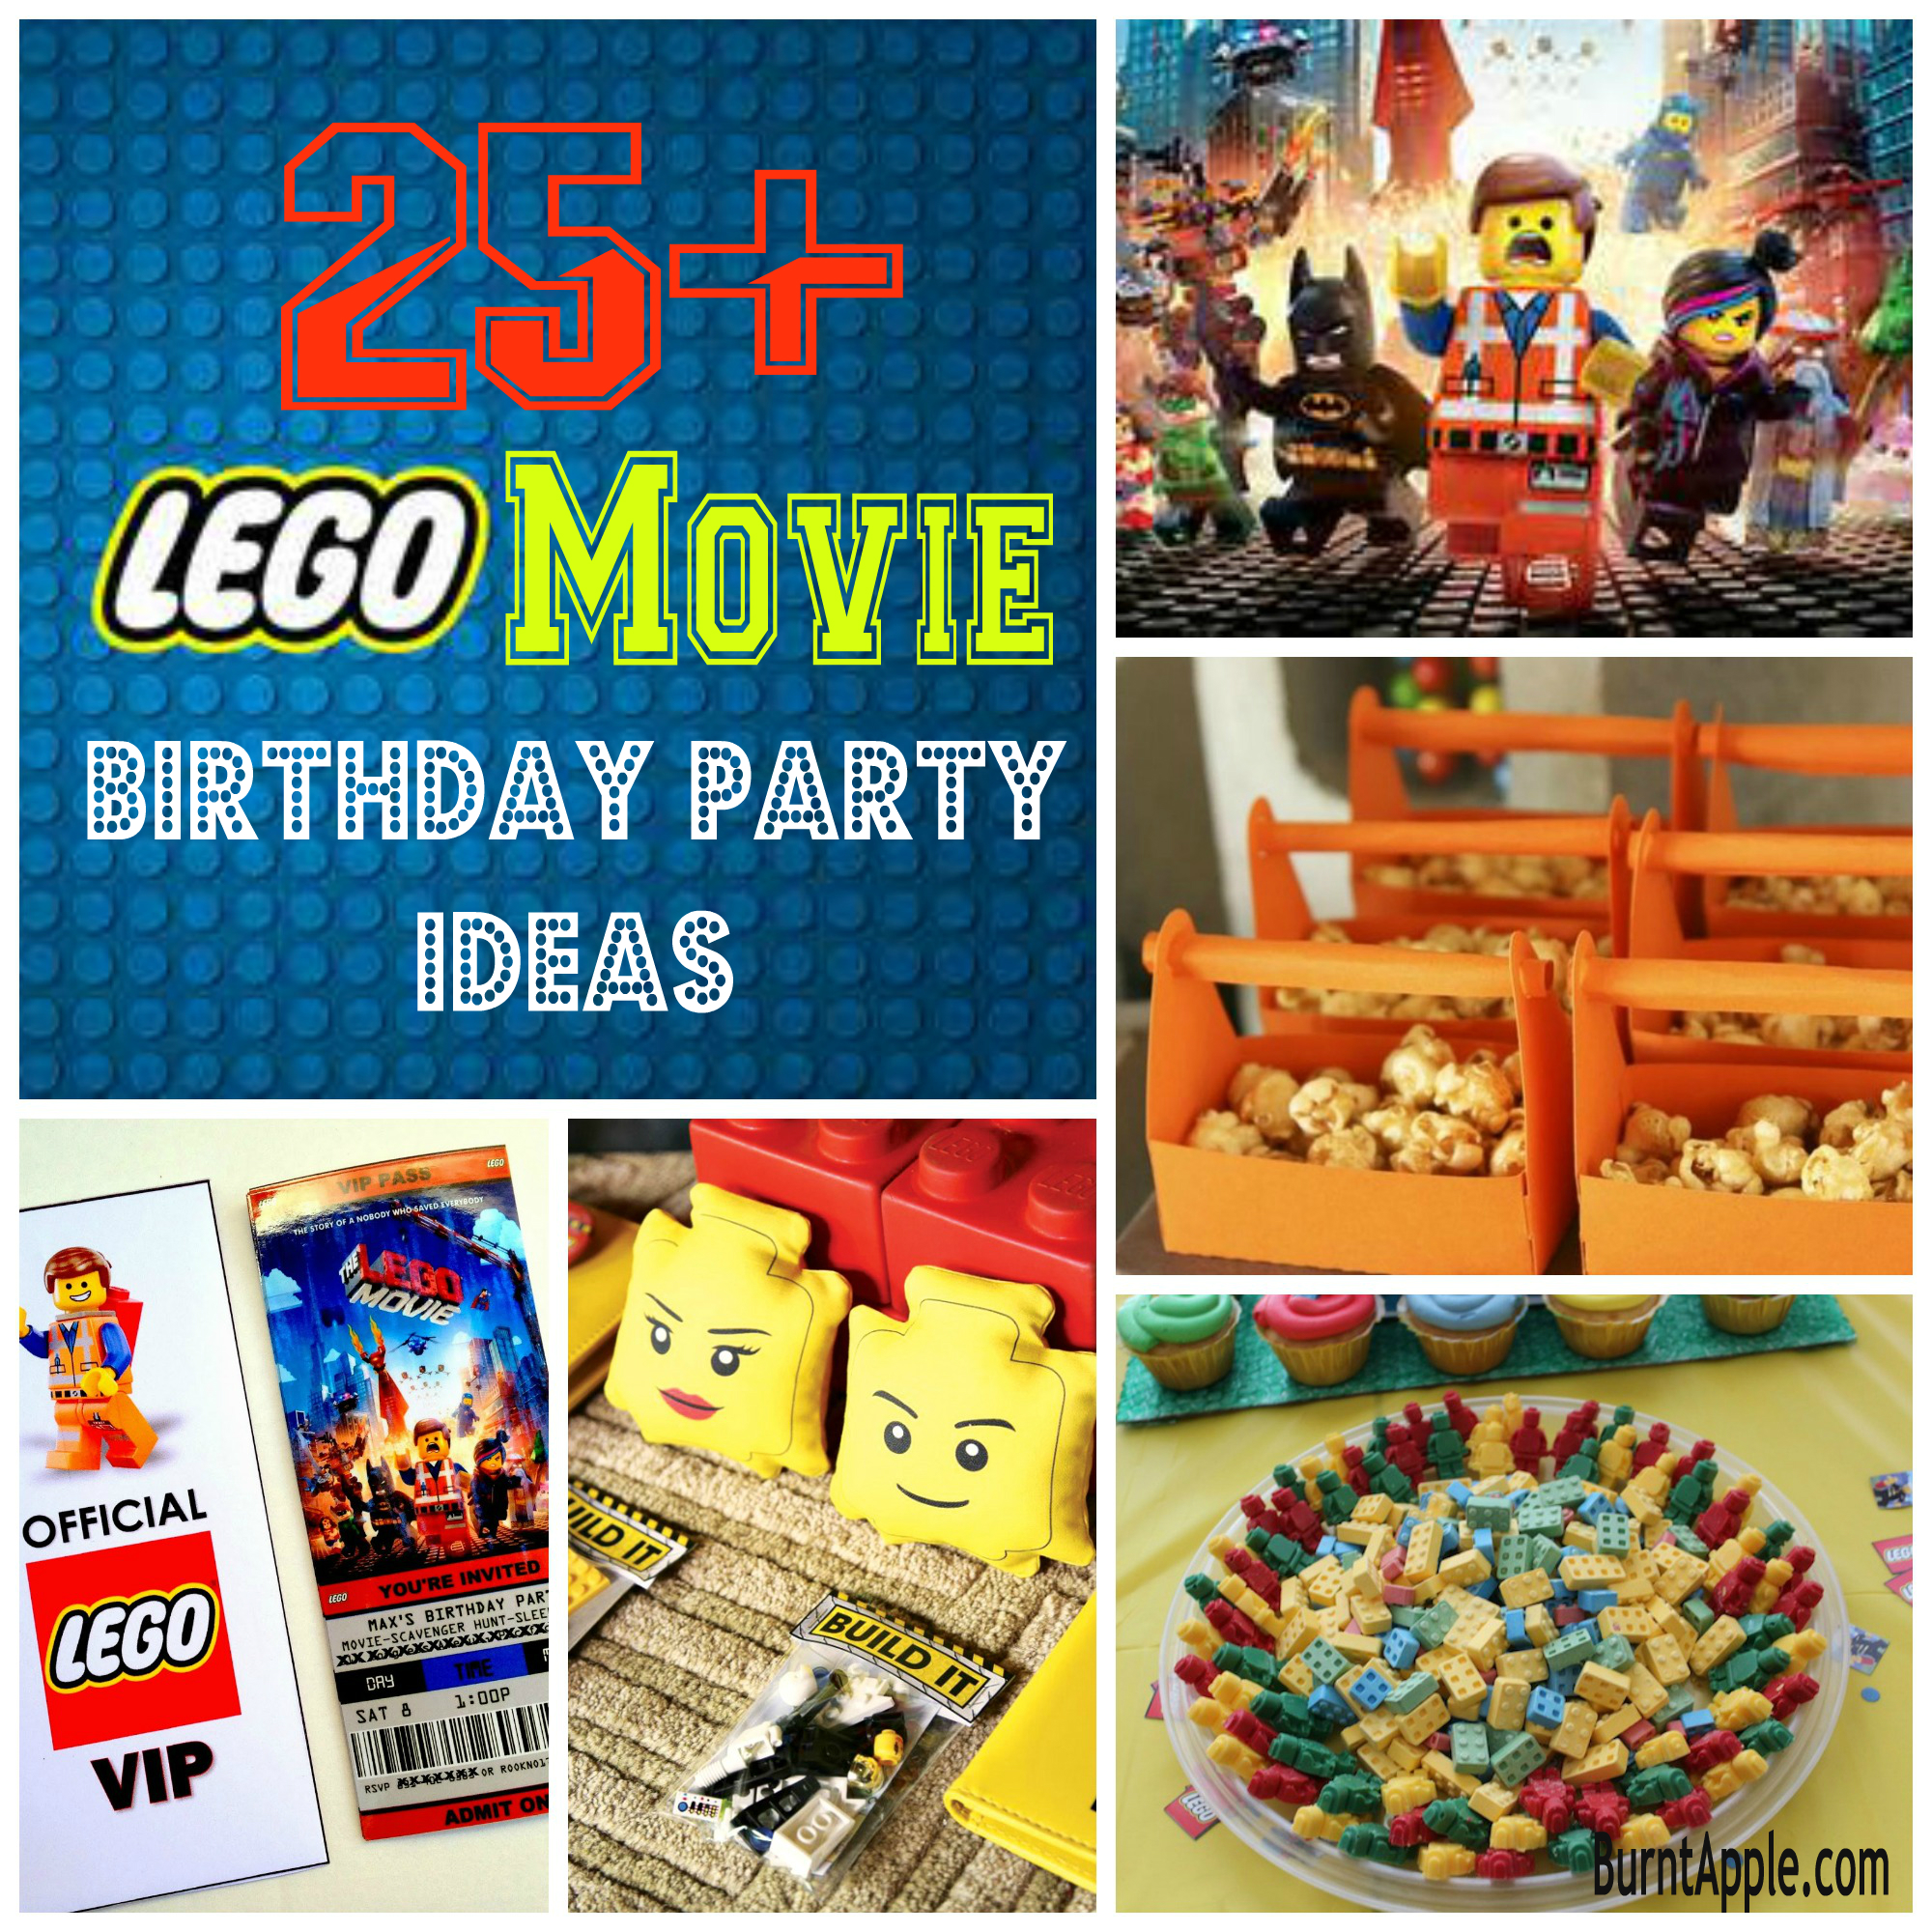 up Movie Centerpieces up Their Lego Movie Ideas